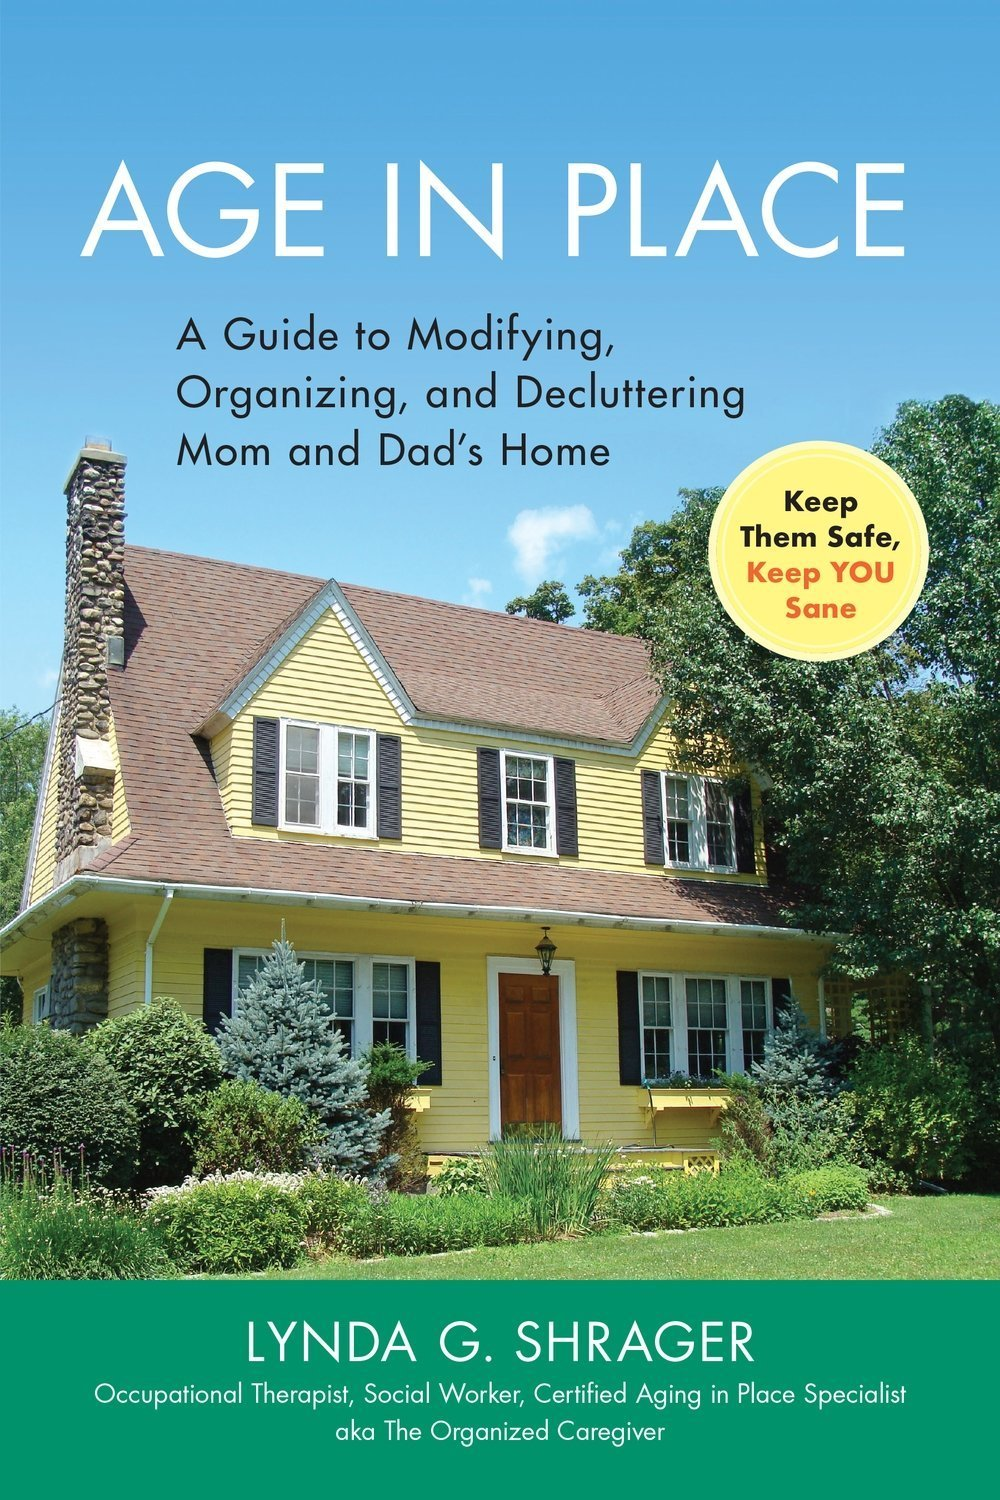 Age in Place: A Guide to Modifying, Organizing and Decluttering Mom and Dad's Home  - Aging